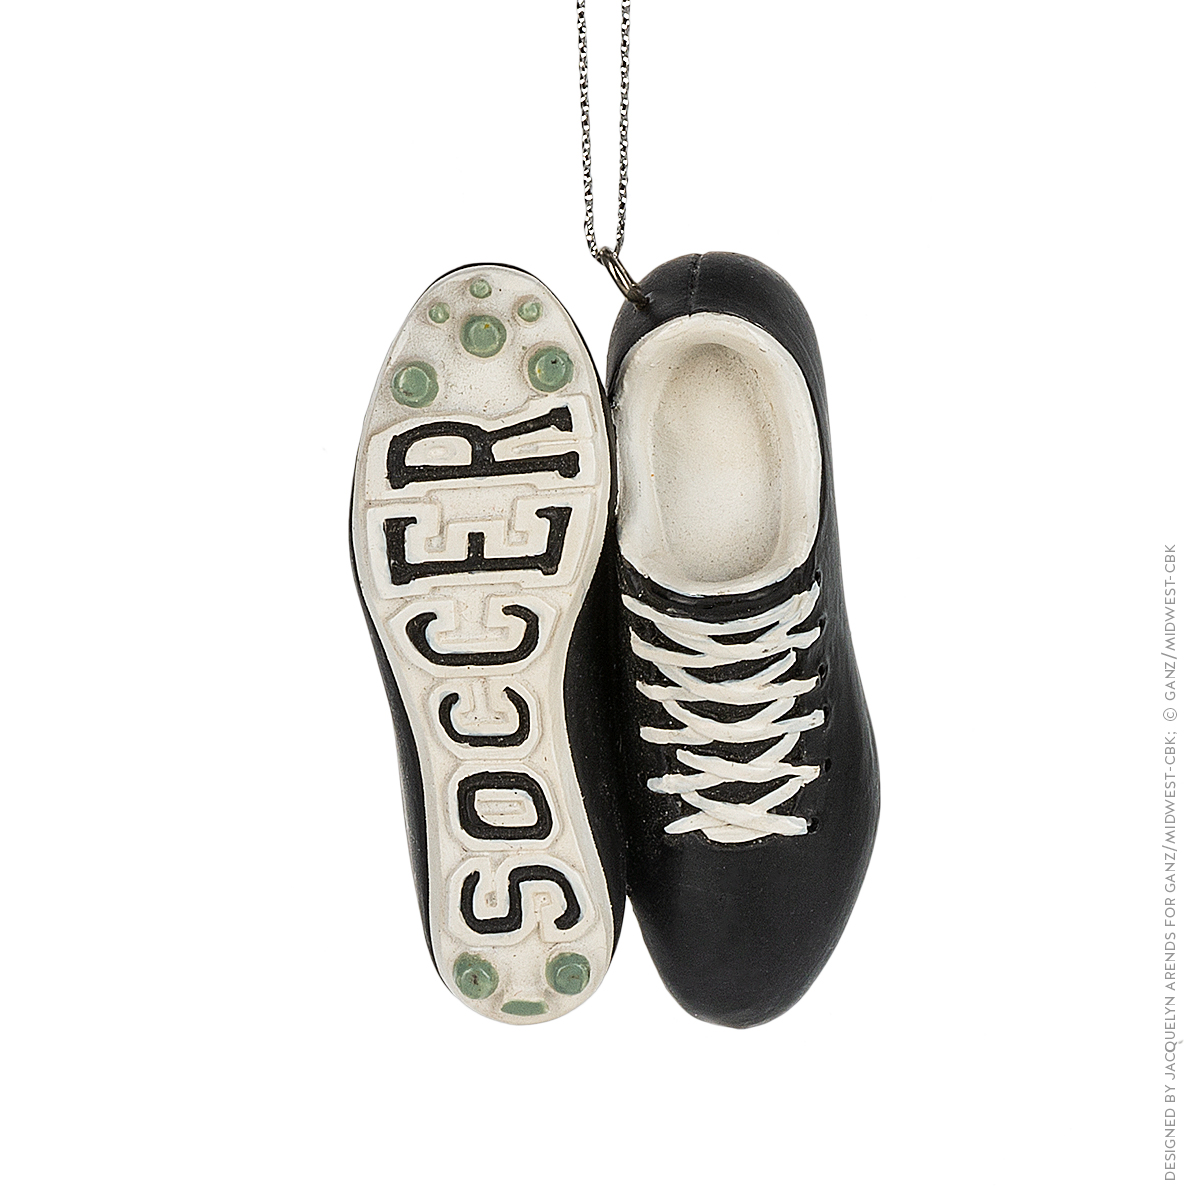 Specialty Ornaments Soccer Shoes ornament by Jacquelyn Arends; © Ganz/Midwest-CBK 2019